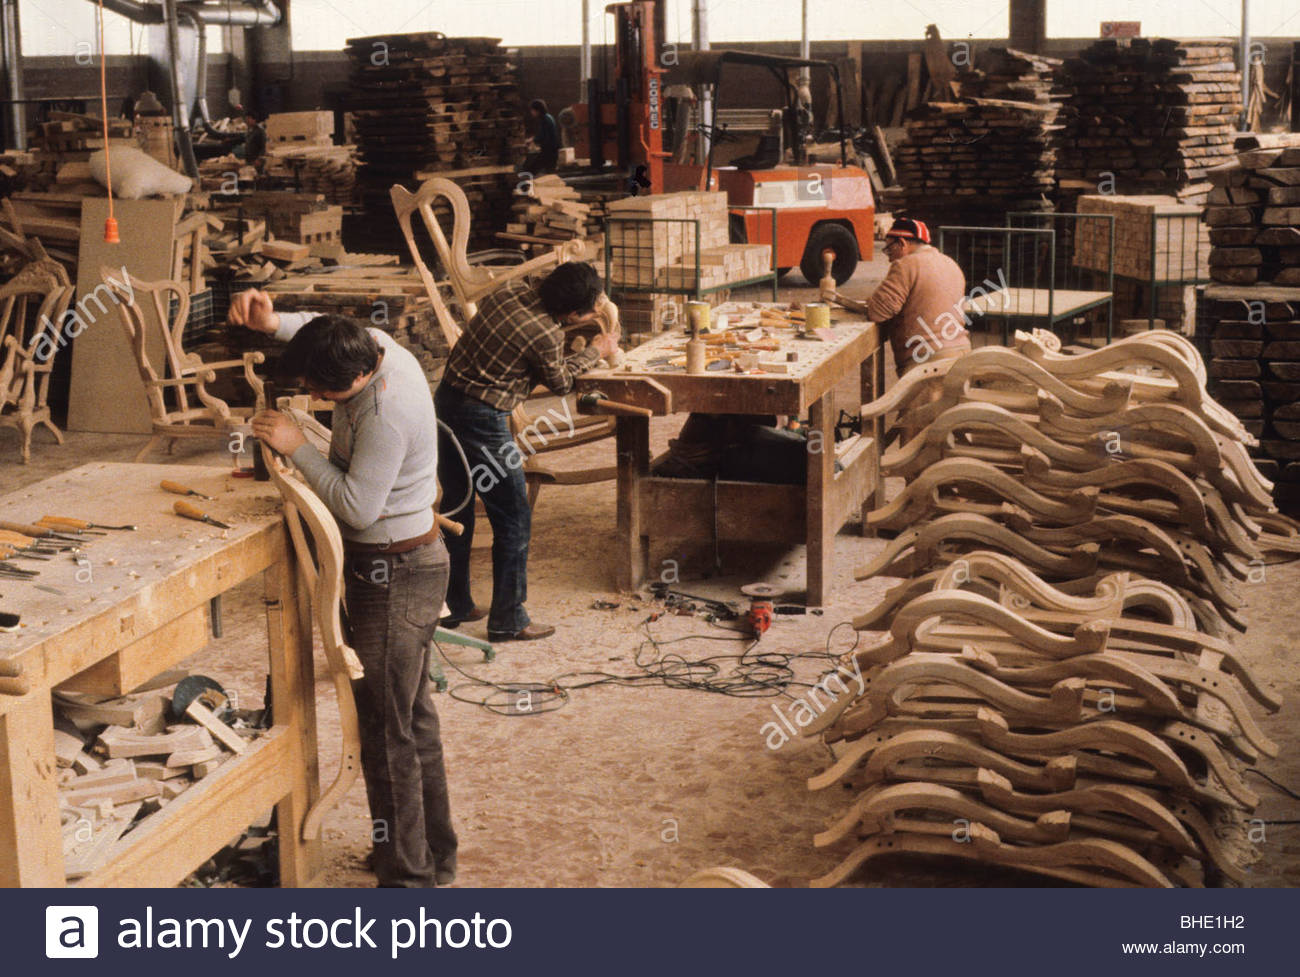 Furniture Factory Brianza Lomc Stock Photo 27968110 Alamy